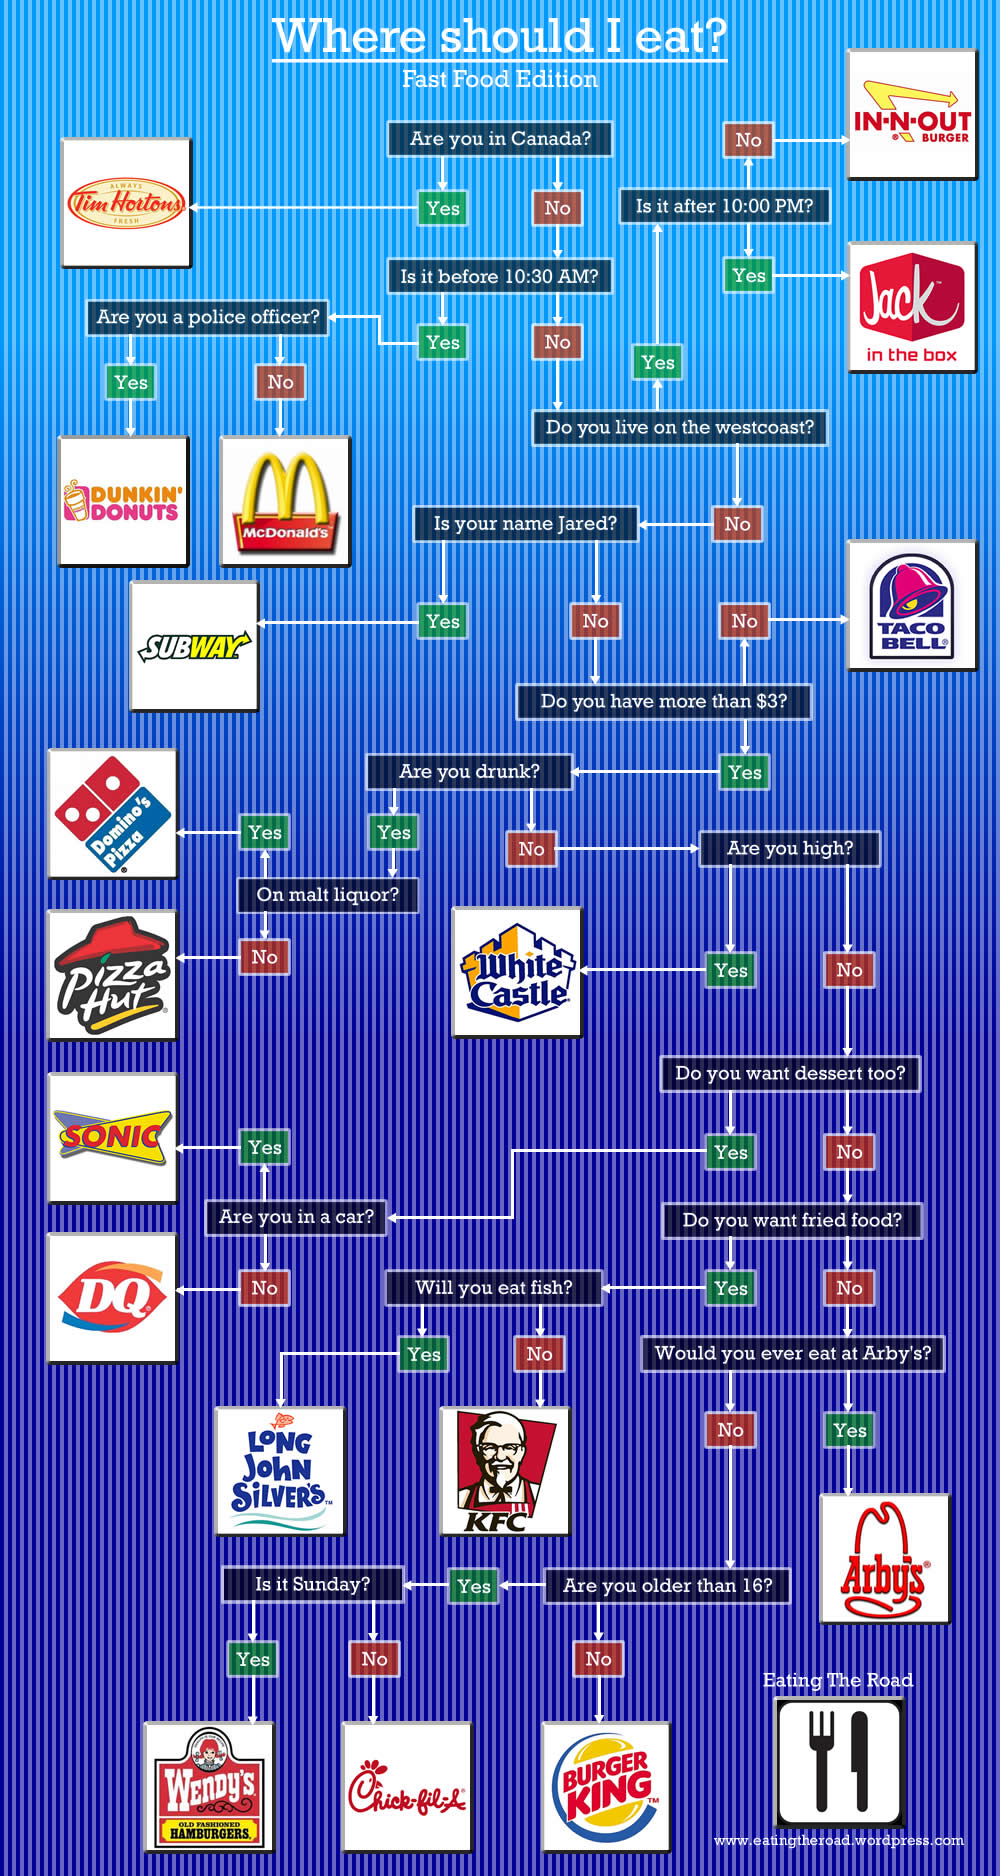 Where Should I Eat? Fast Food Edition